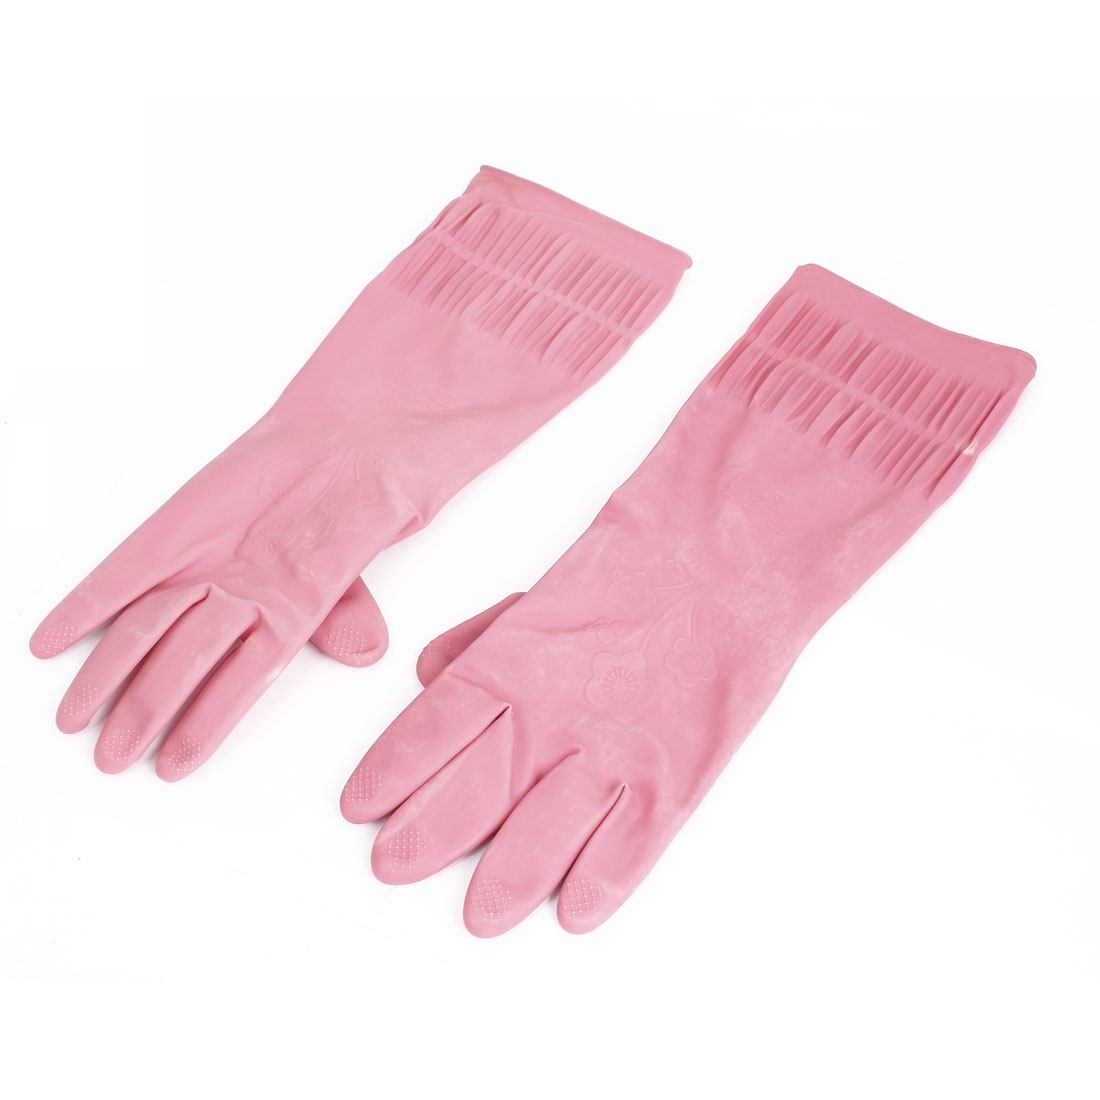 37cm x 13cm Rubber Household Kitchen Cleaning Dish Washing Gloves Pink Pair